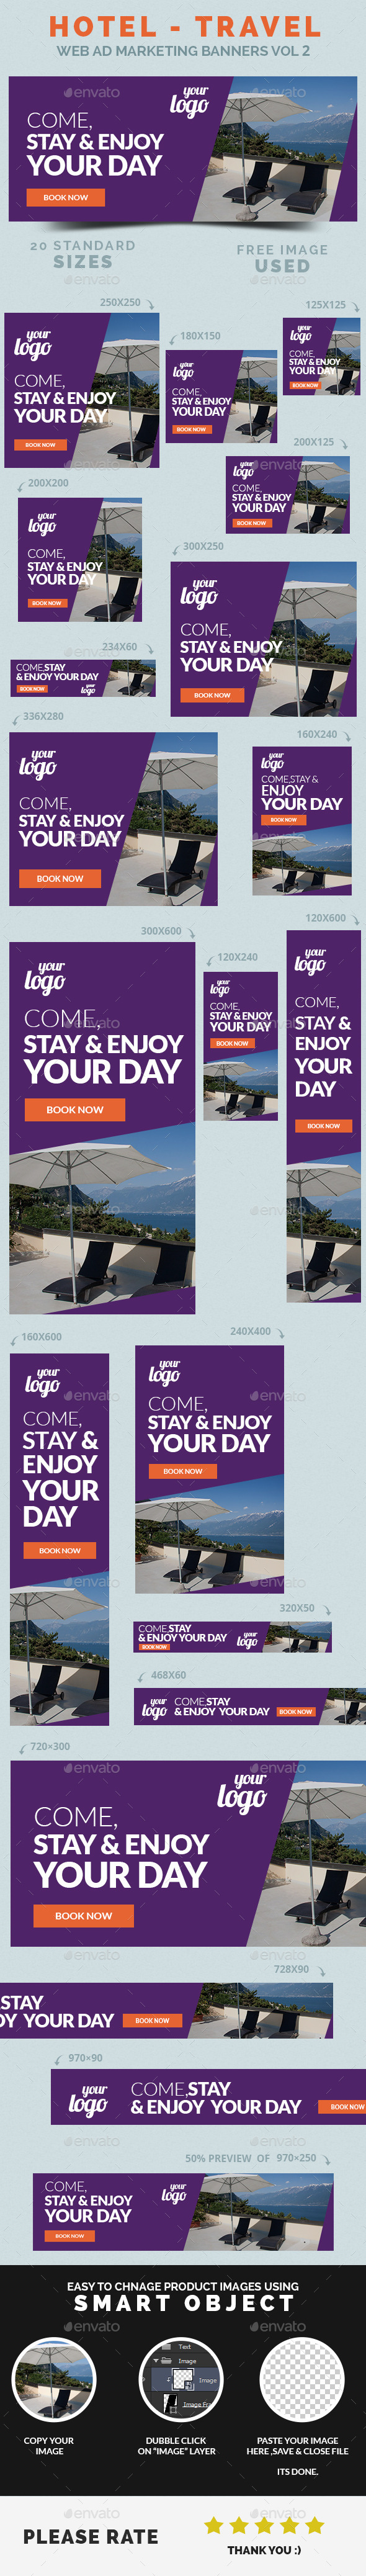 GraphicRiver Hotel Travel Web Ad Marketing Banners Vol 2 9092555